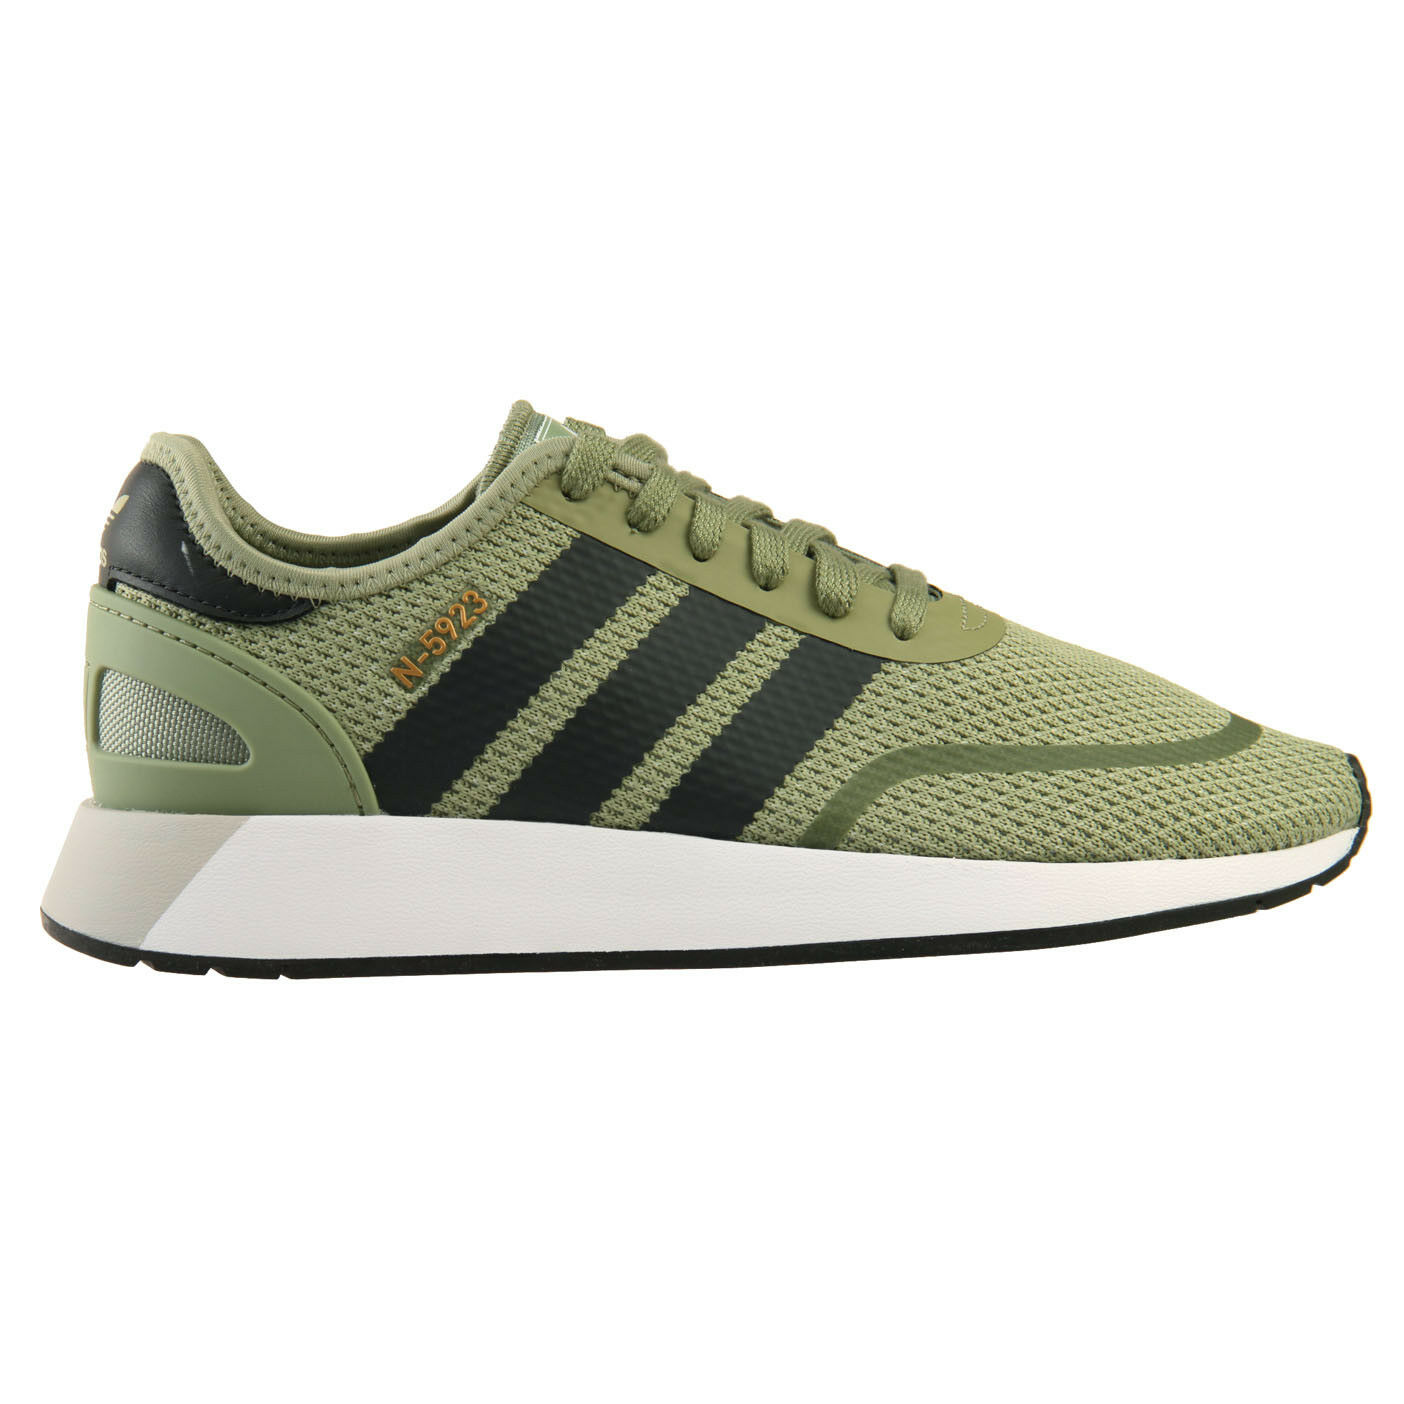 Adidas N-5923 Mens DB0959 Tent Green Carbon White Running shoes Size 11.5